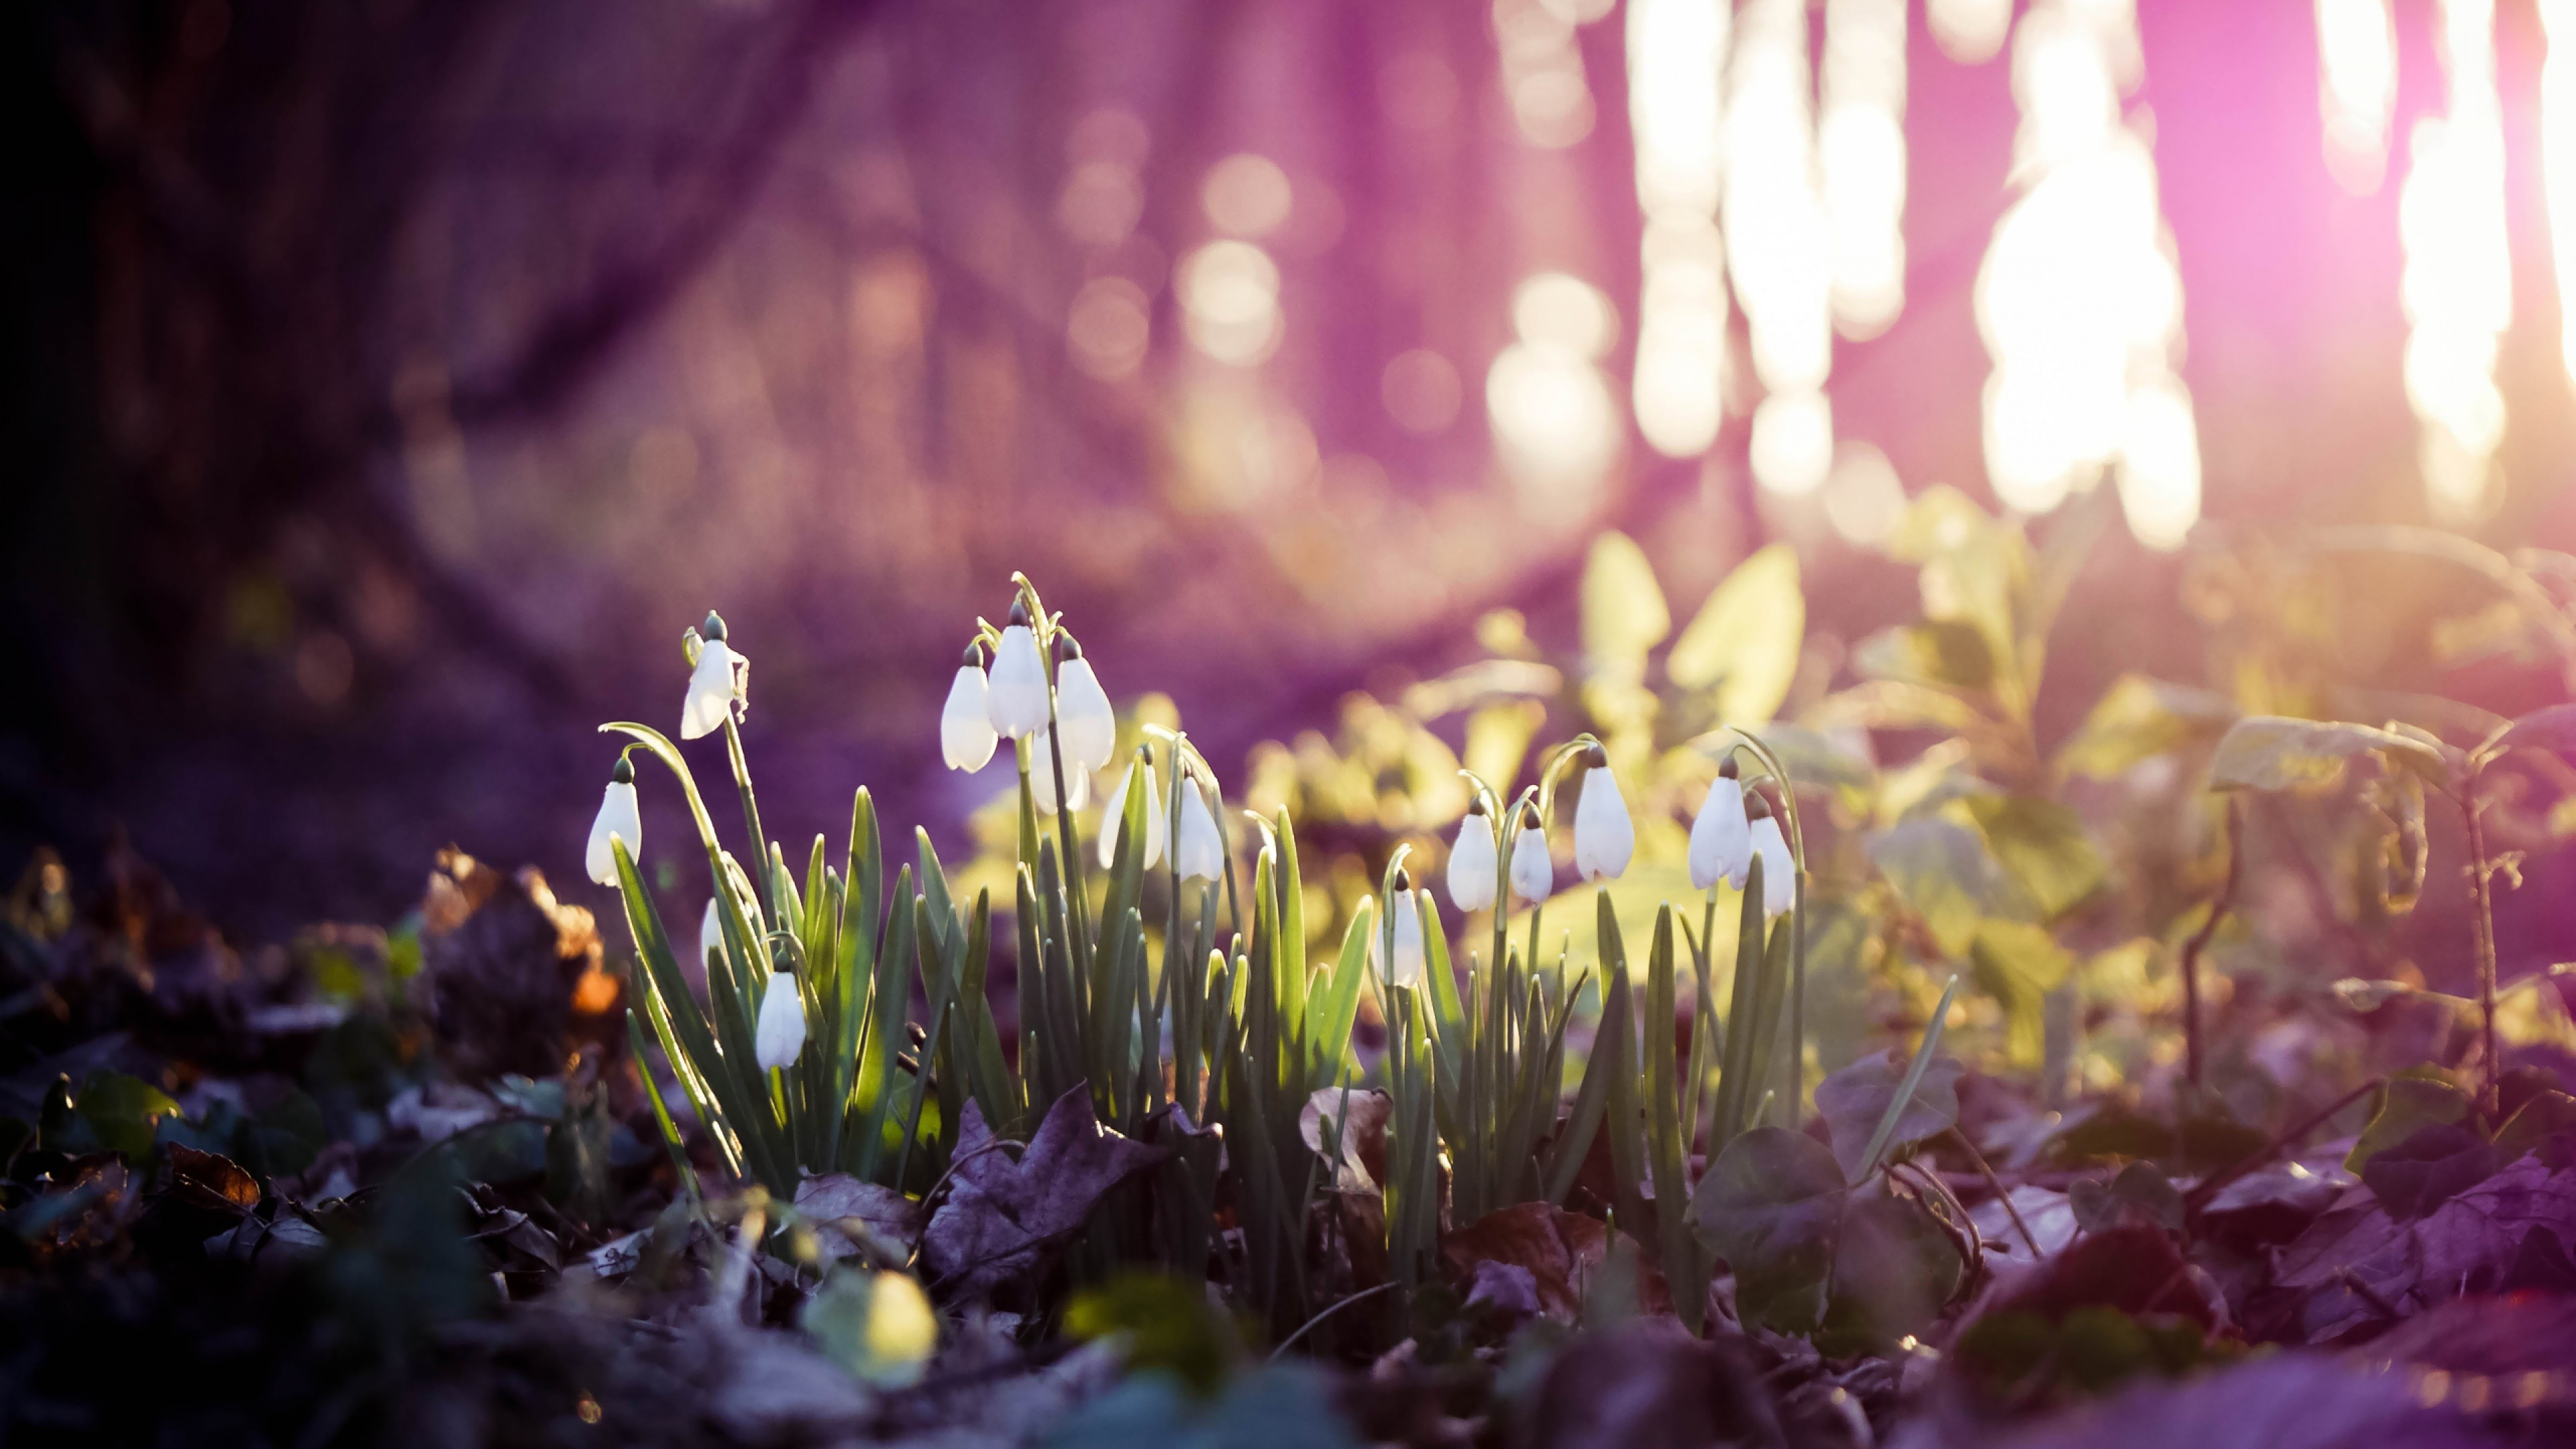 3840x2160 Preview wallpaper spring, snowdrops, flowers, wood, first